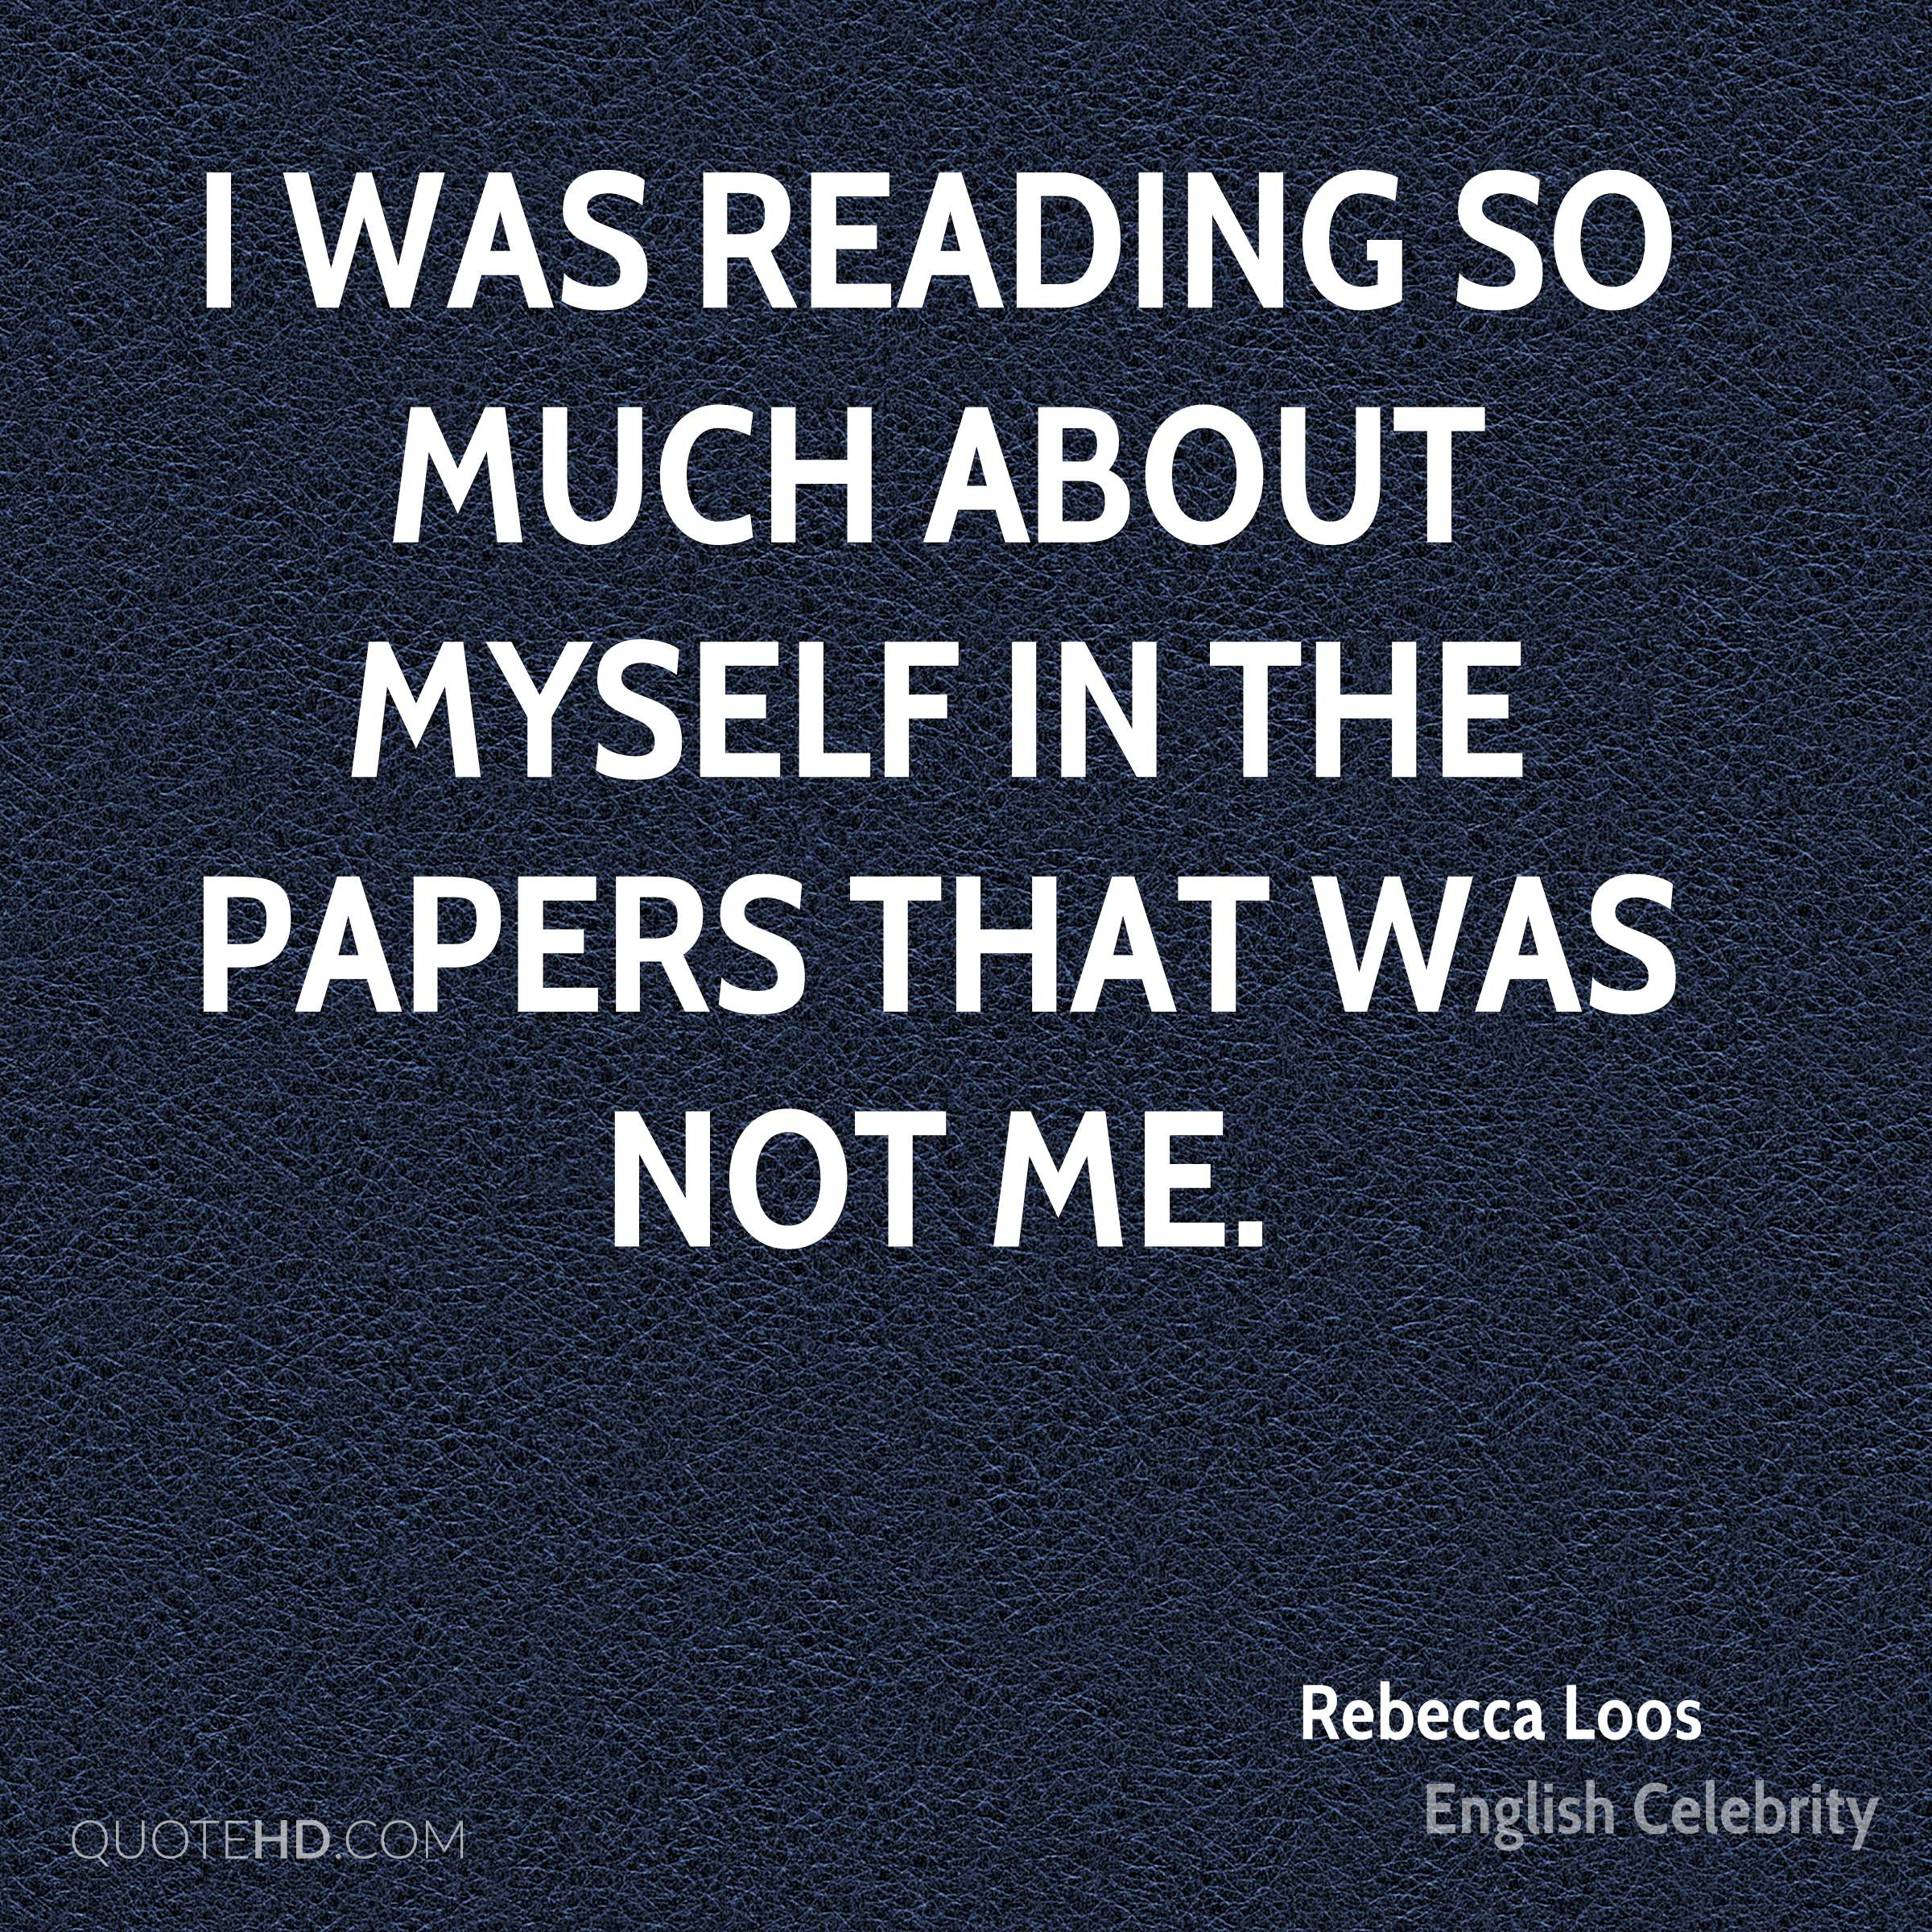 I was reading so much about myself in the papers that was not me.